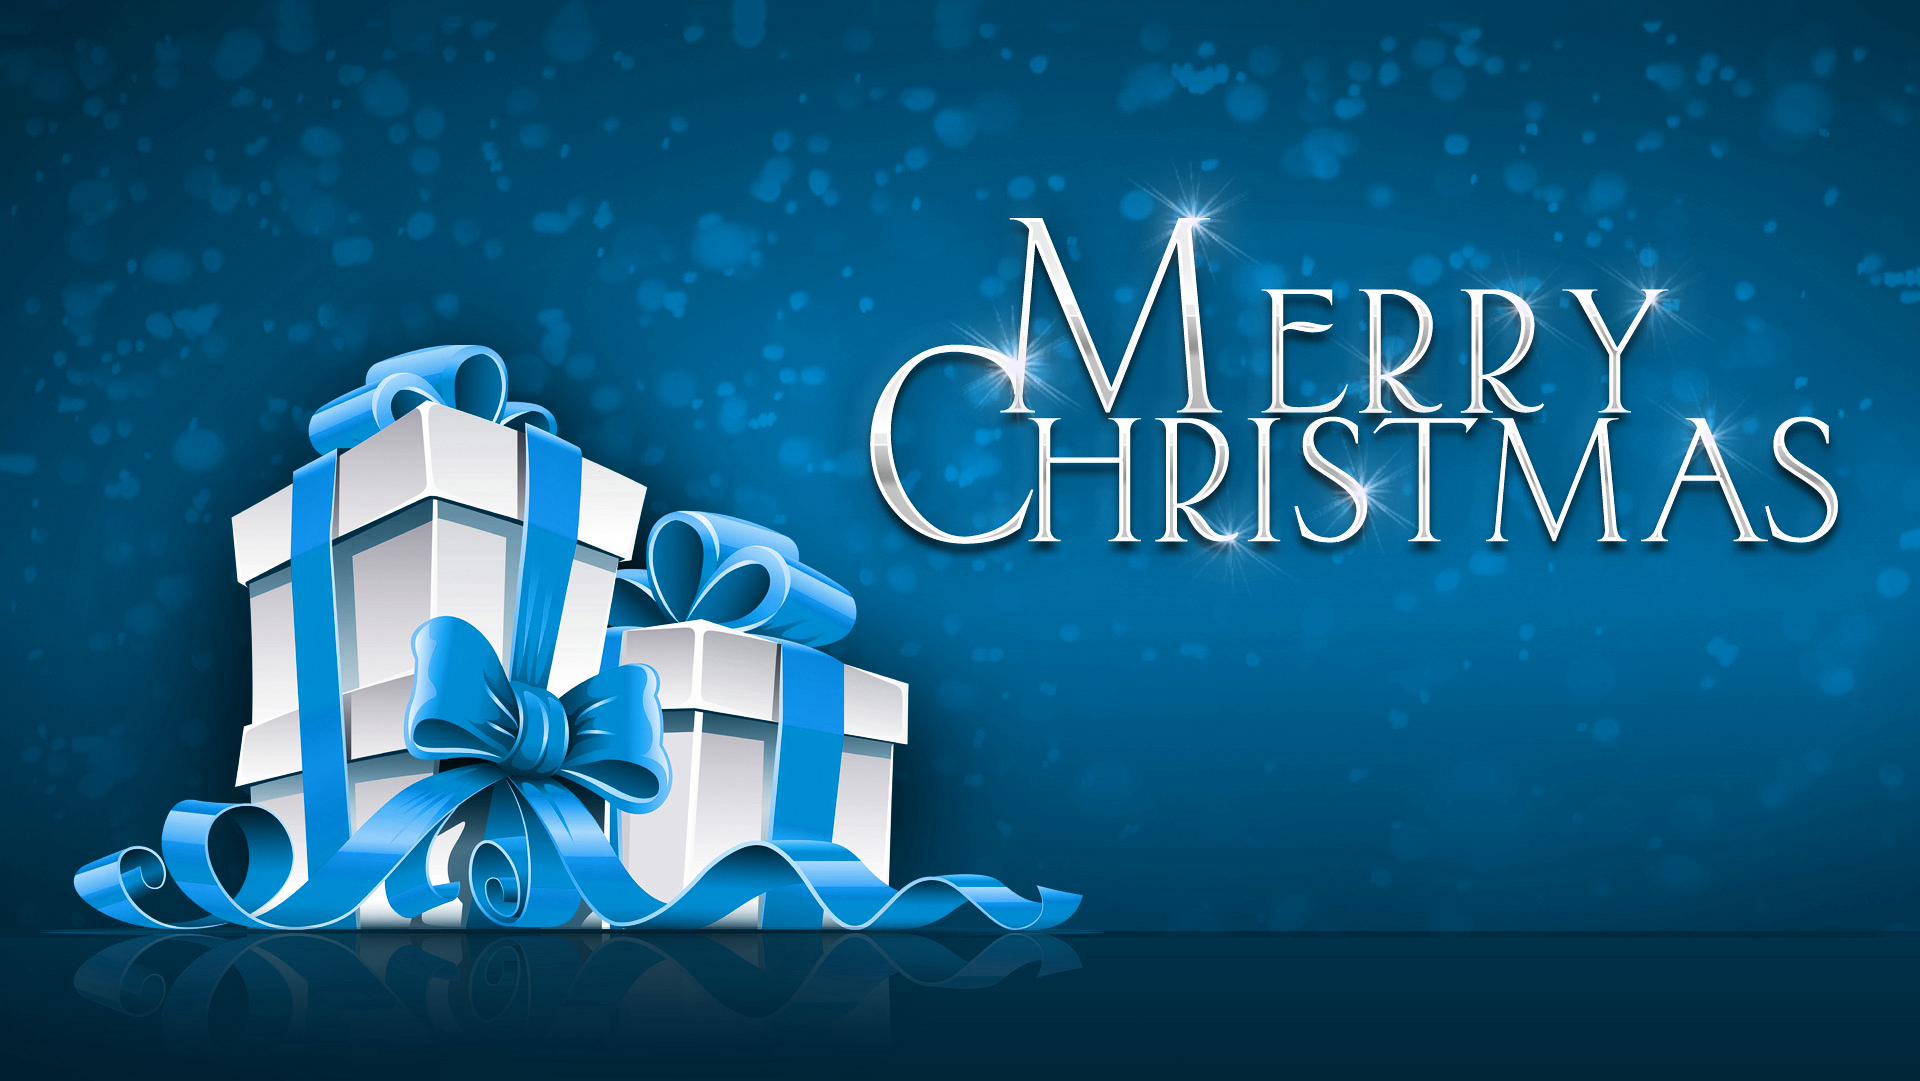 Merry Christmas 1080p Widescreen HD Wallpaper